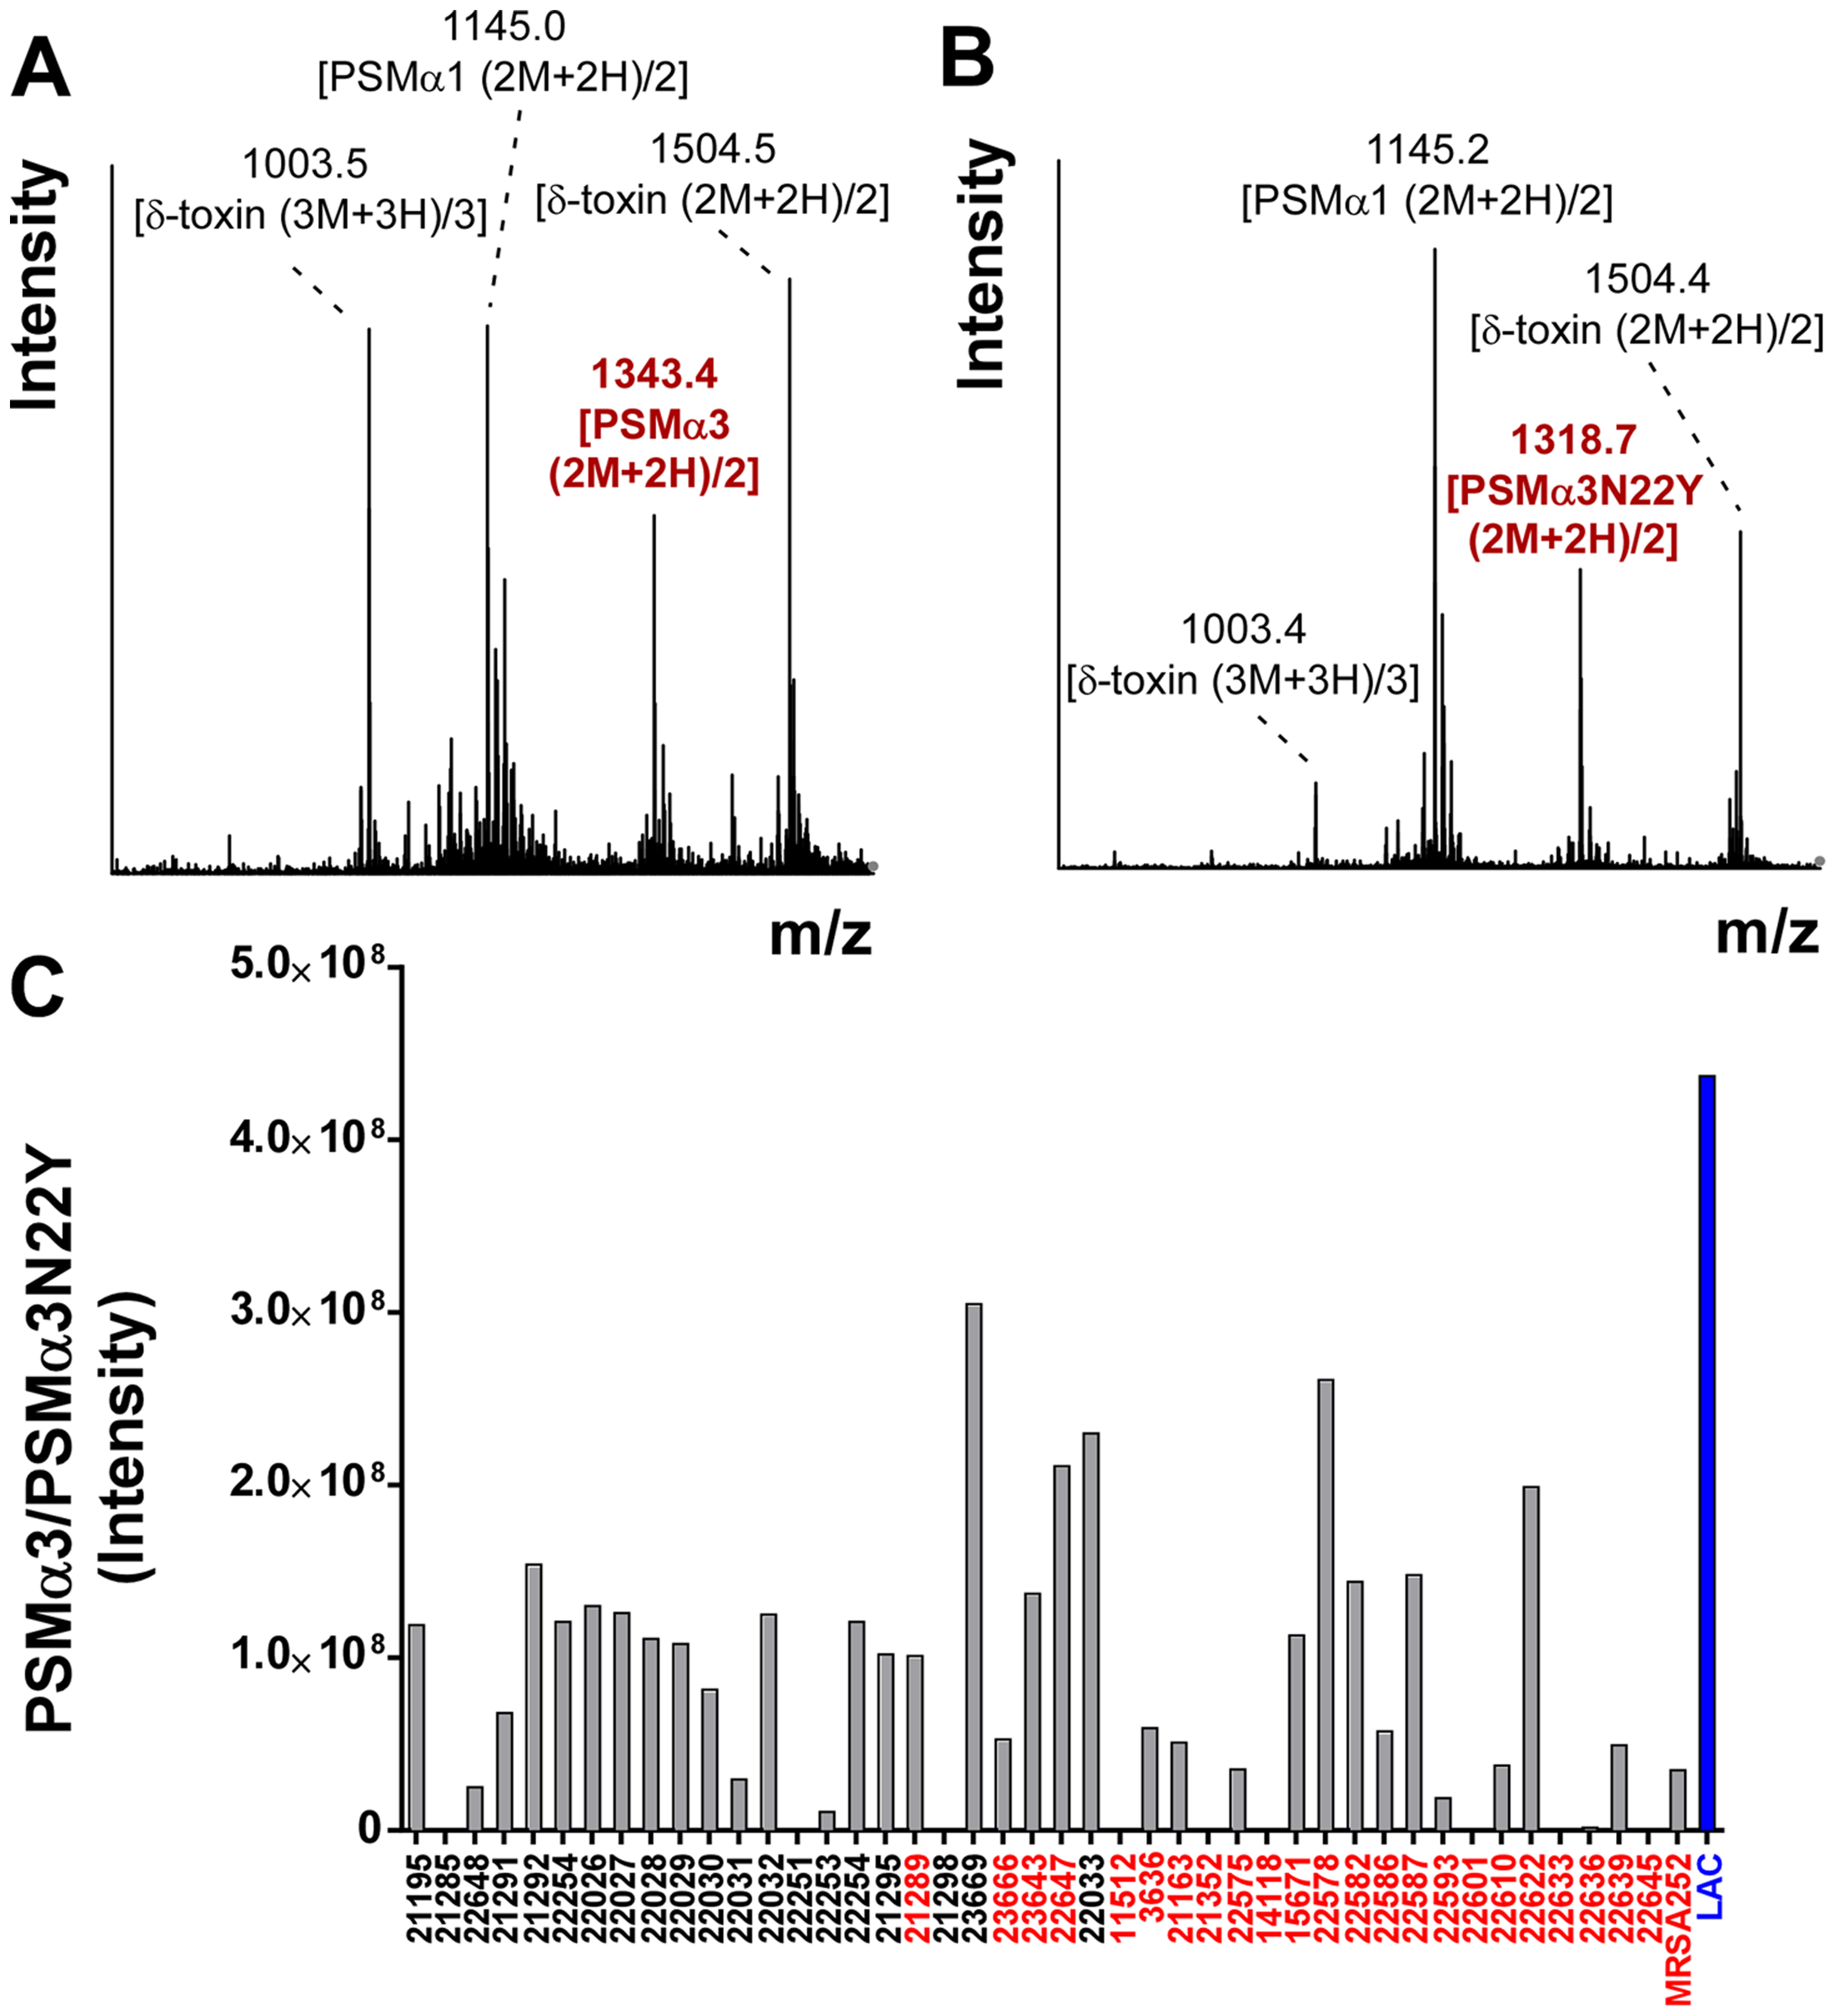 CC30 strains produce a variant of PSMα3.